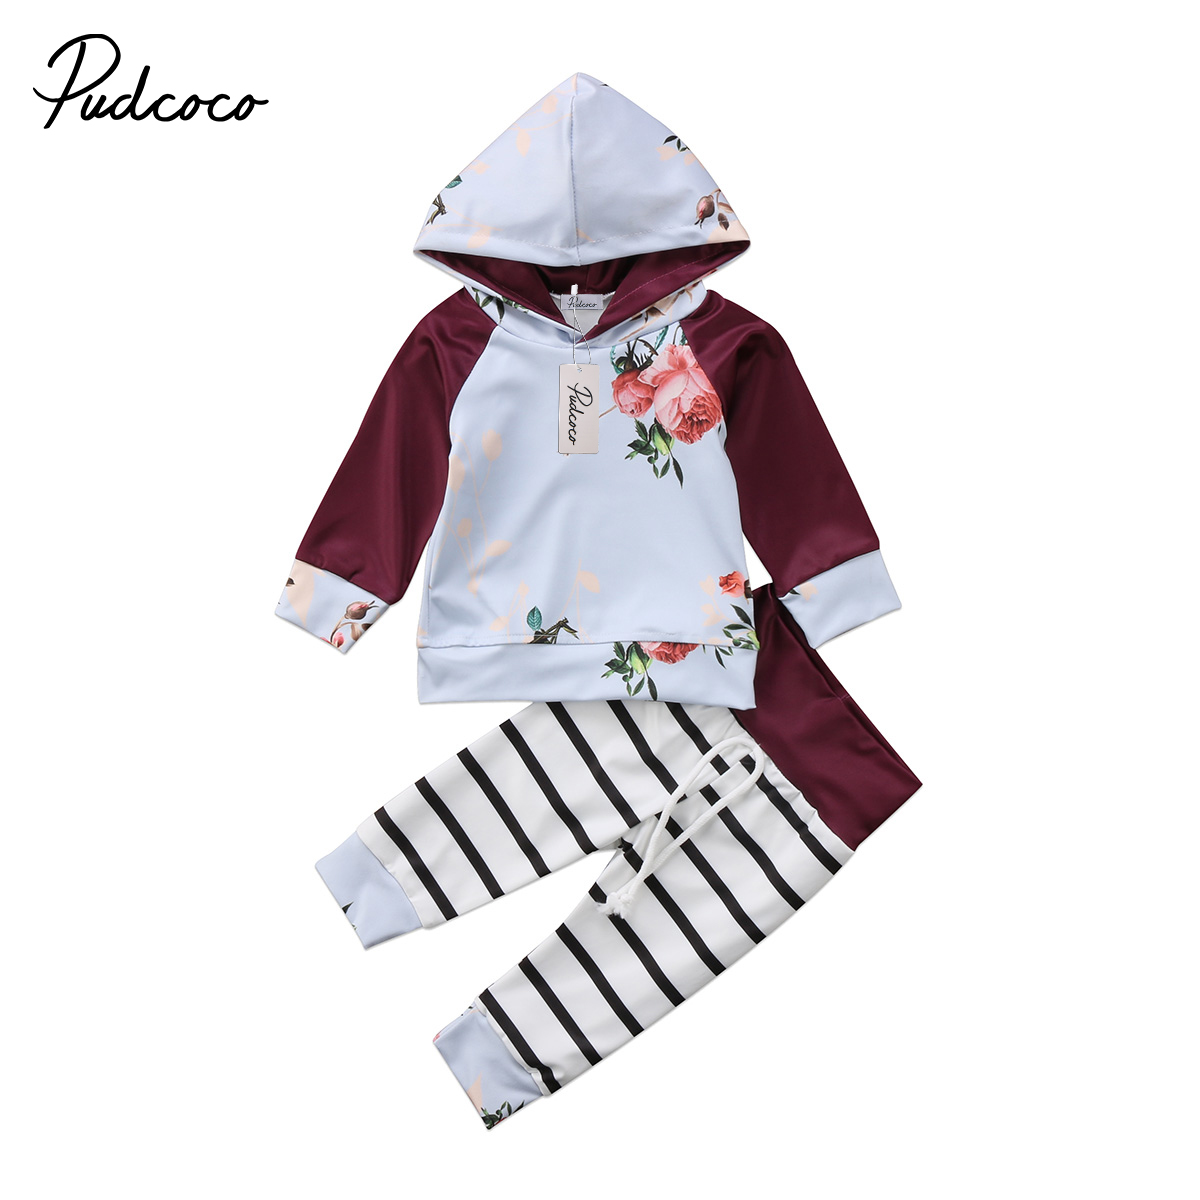 2pcs Spring Autumn Newborn Kids Baby Boy Girl Floral Tops Hoodie Sweatshirt Tops+Striped Pants Baby Home Outfit Clothes Set 0-2T